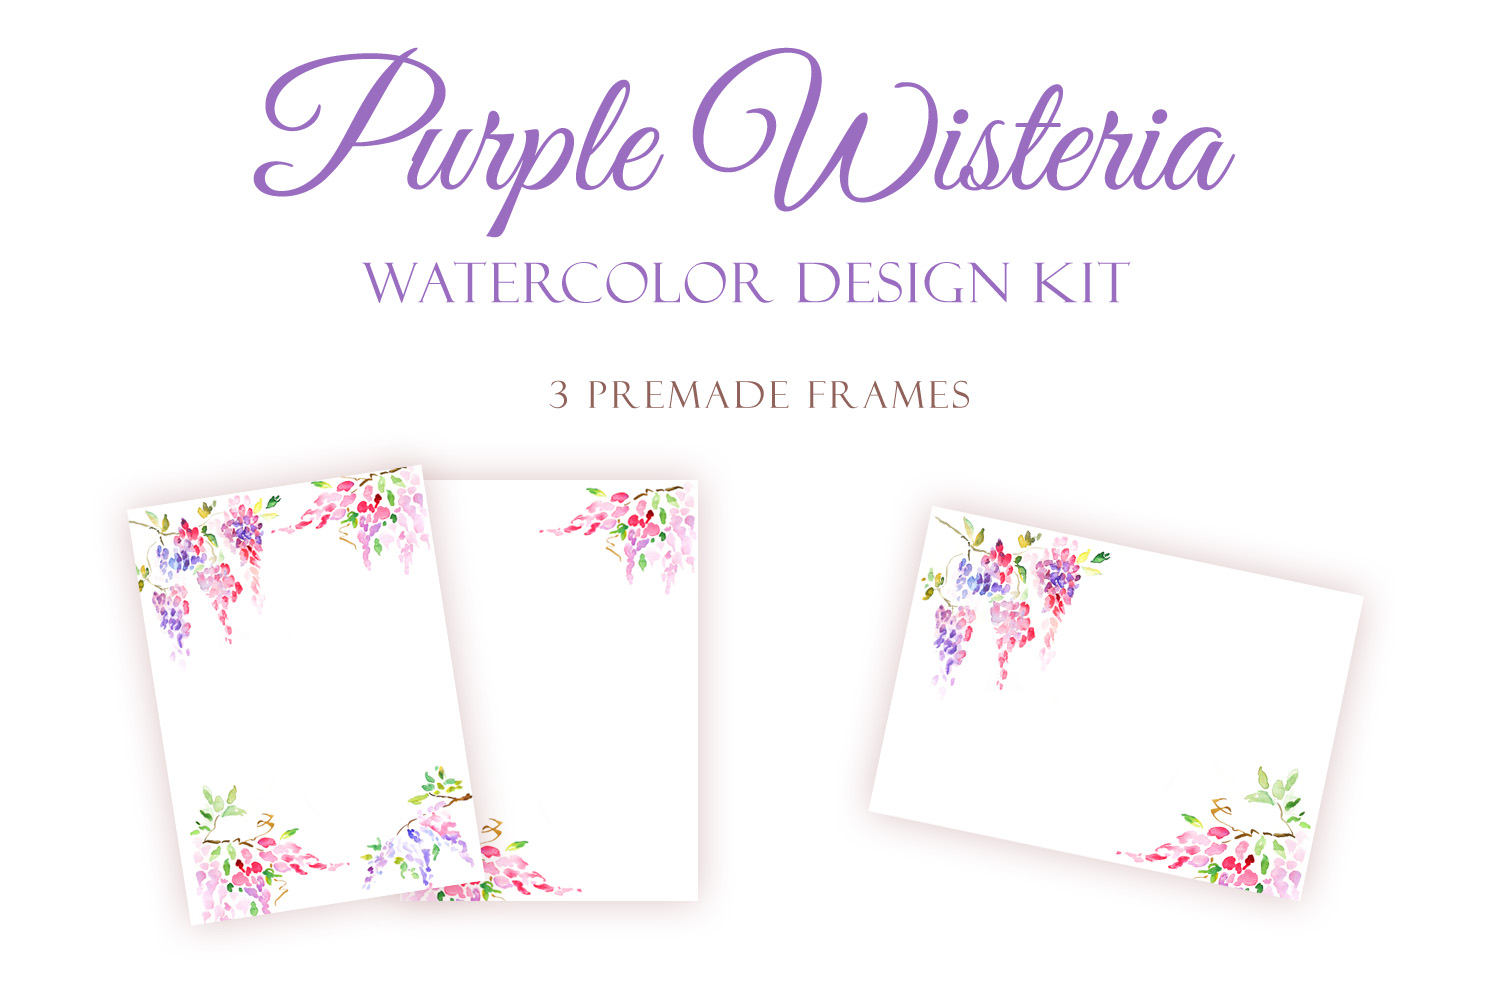 Watercolor Purple Wisteria - Handmade clipart and design kit  example image 2